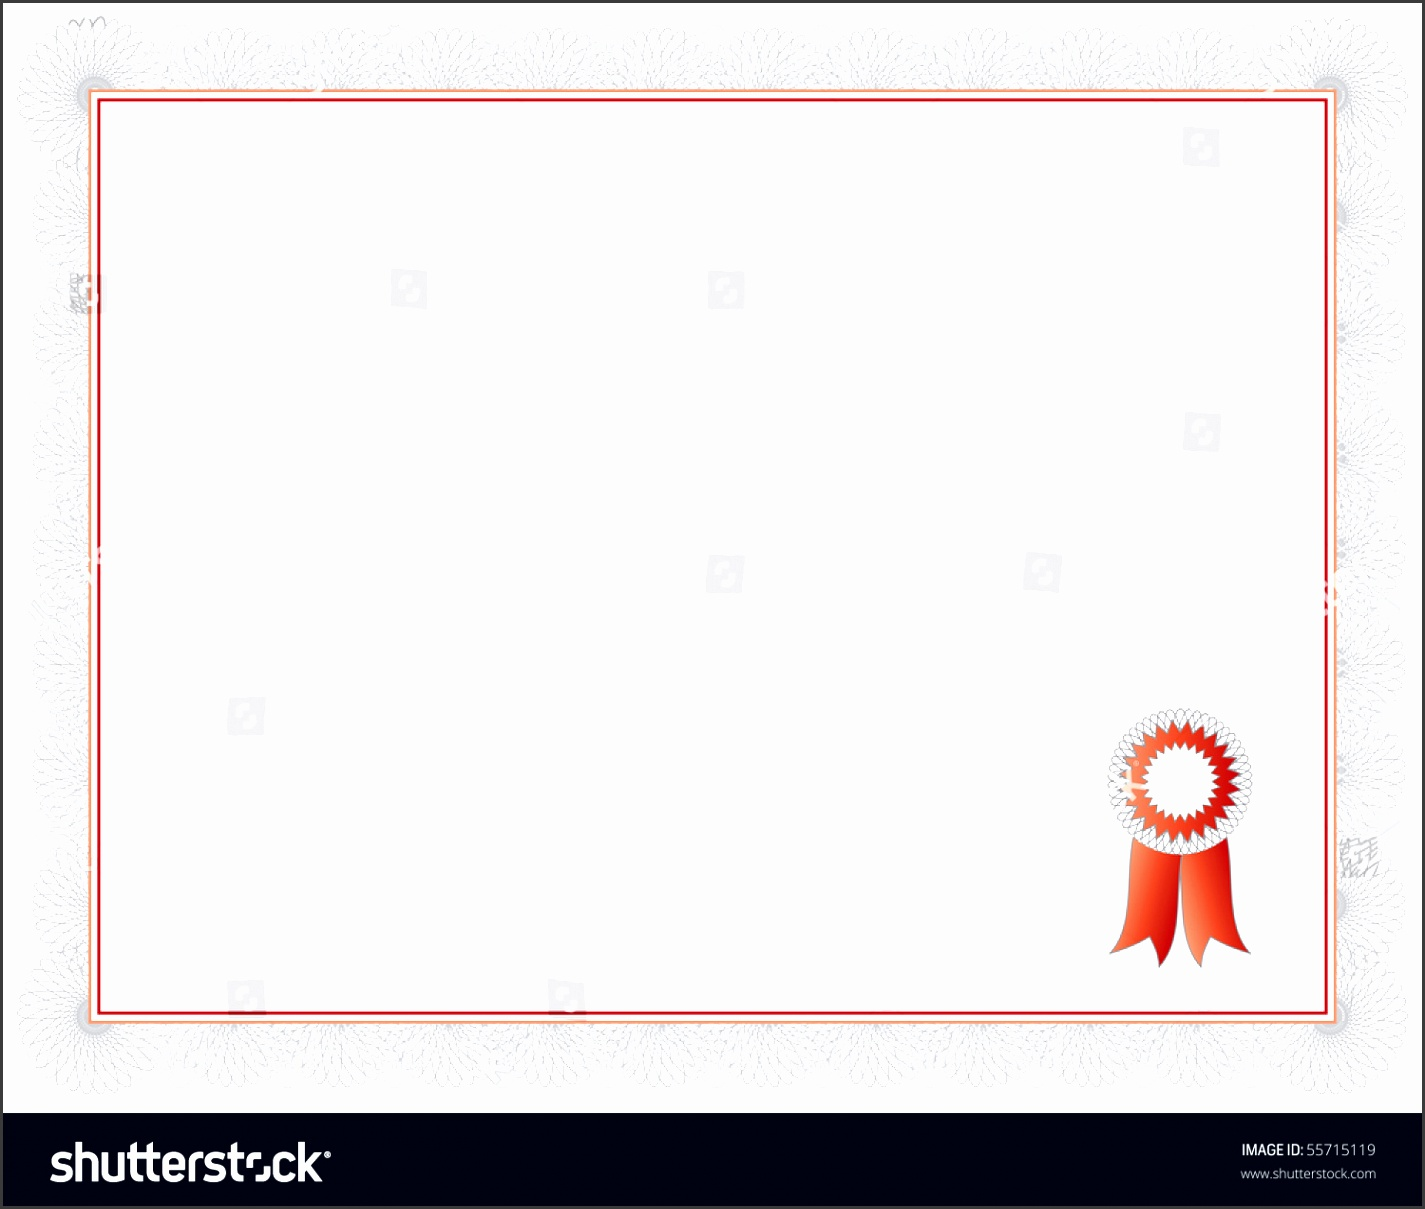 sample certificate of pletion template stock photo certificate of pletion template a vector with sample